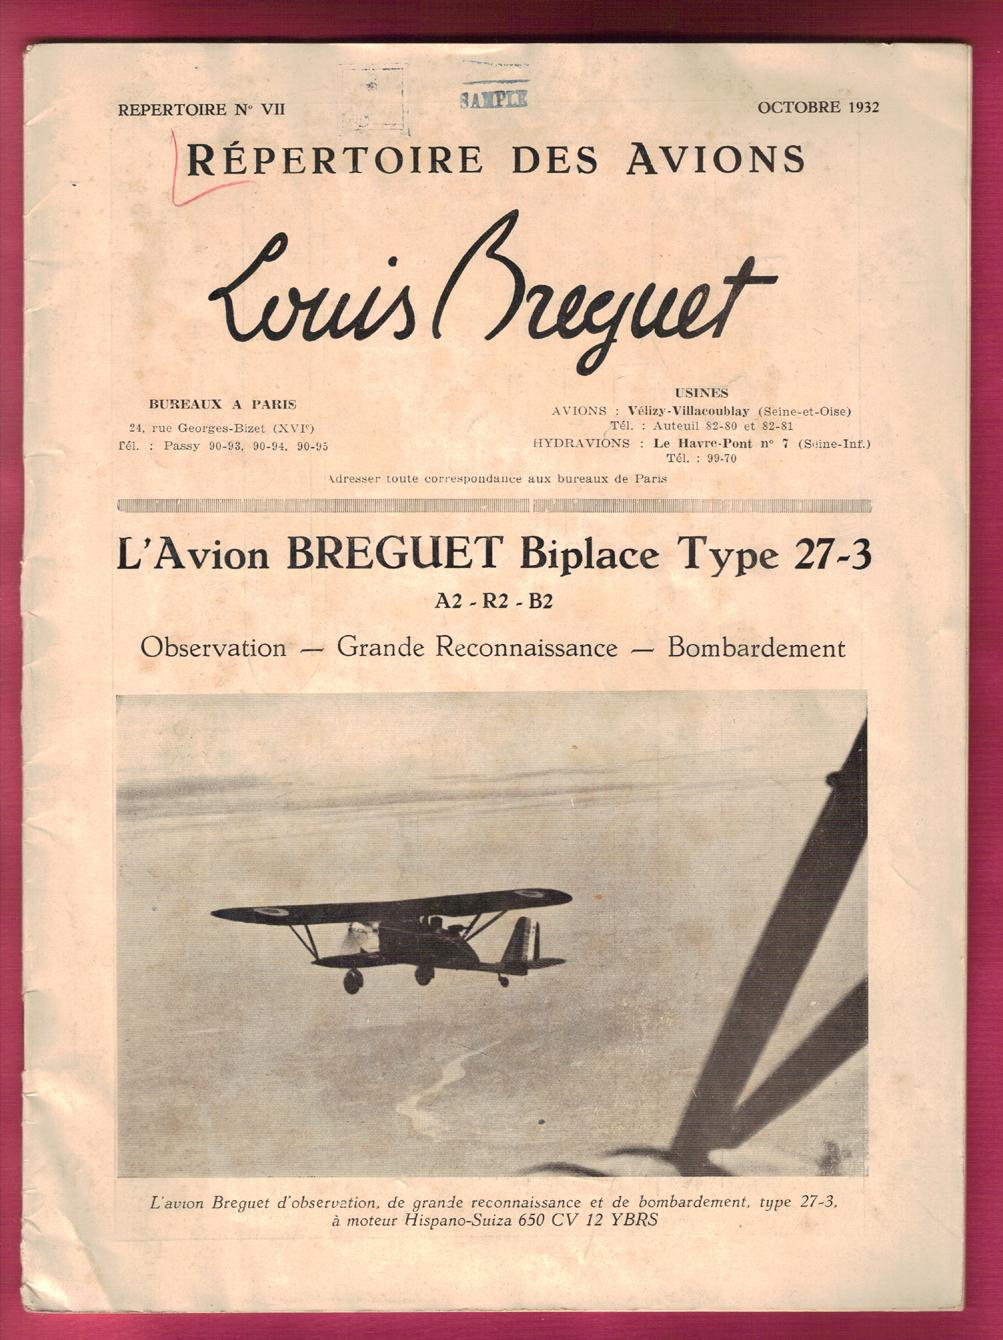 Repertoire Des Avion Louis Breguet / L'Avion BREGUET Biplace Type 27-3 / Octobre (October) 1932 (editors) Paris: Bureau de Paris, (October) 1932. Text in French. Wraps, 28 pp. Very Good, Plus. Moderate cover soil, and really not much in the way of peripher